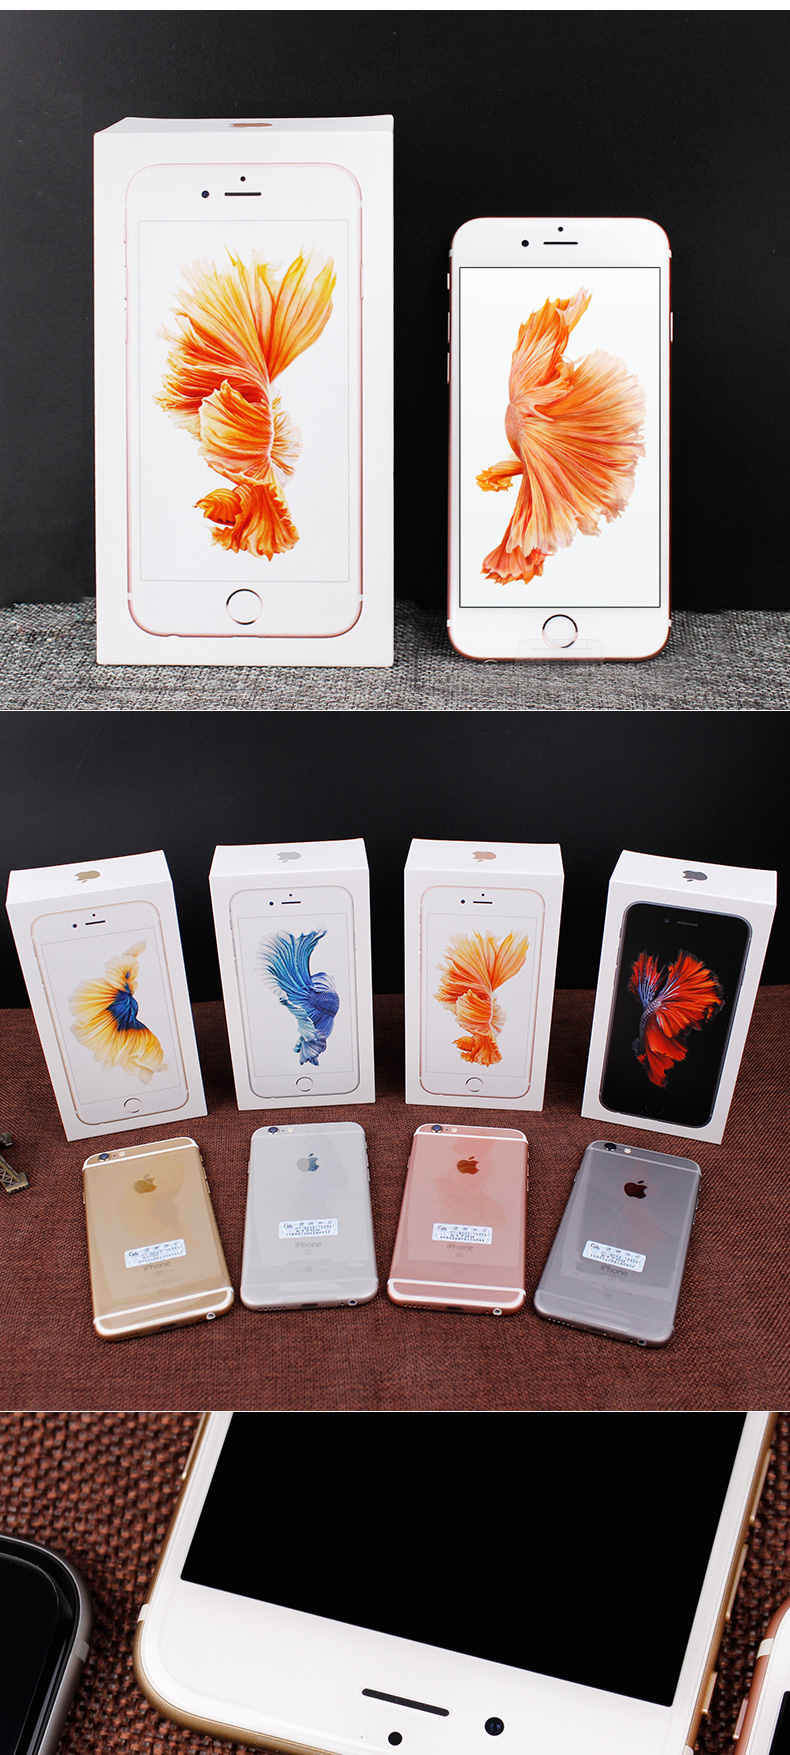 page_apple_iphone-6s_2_01.jpg